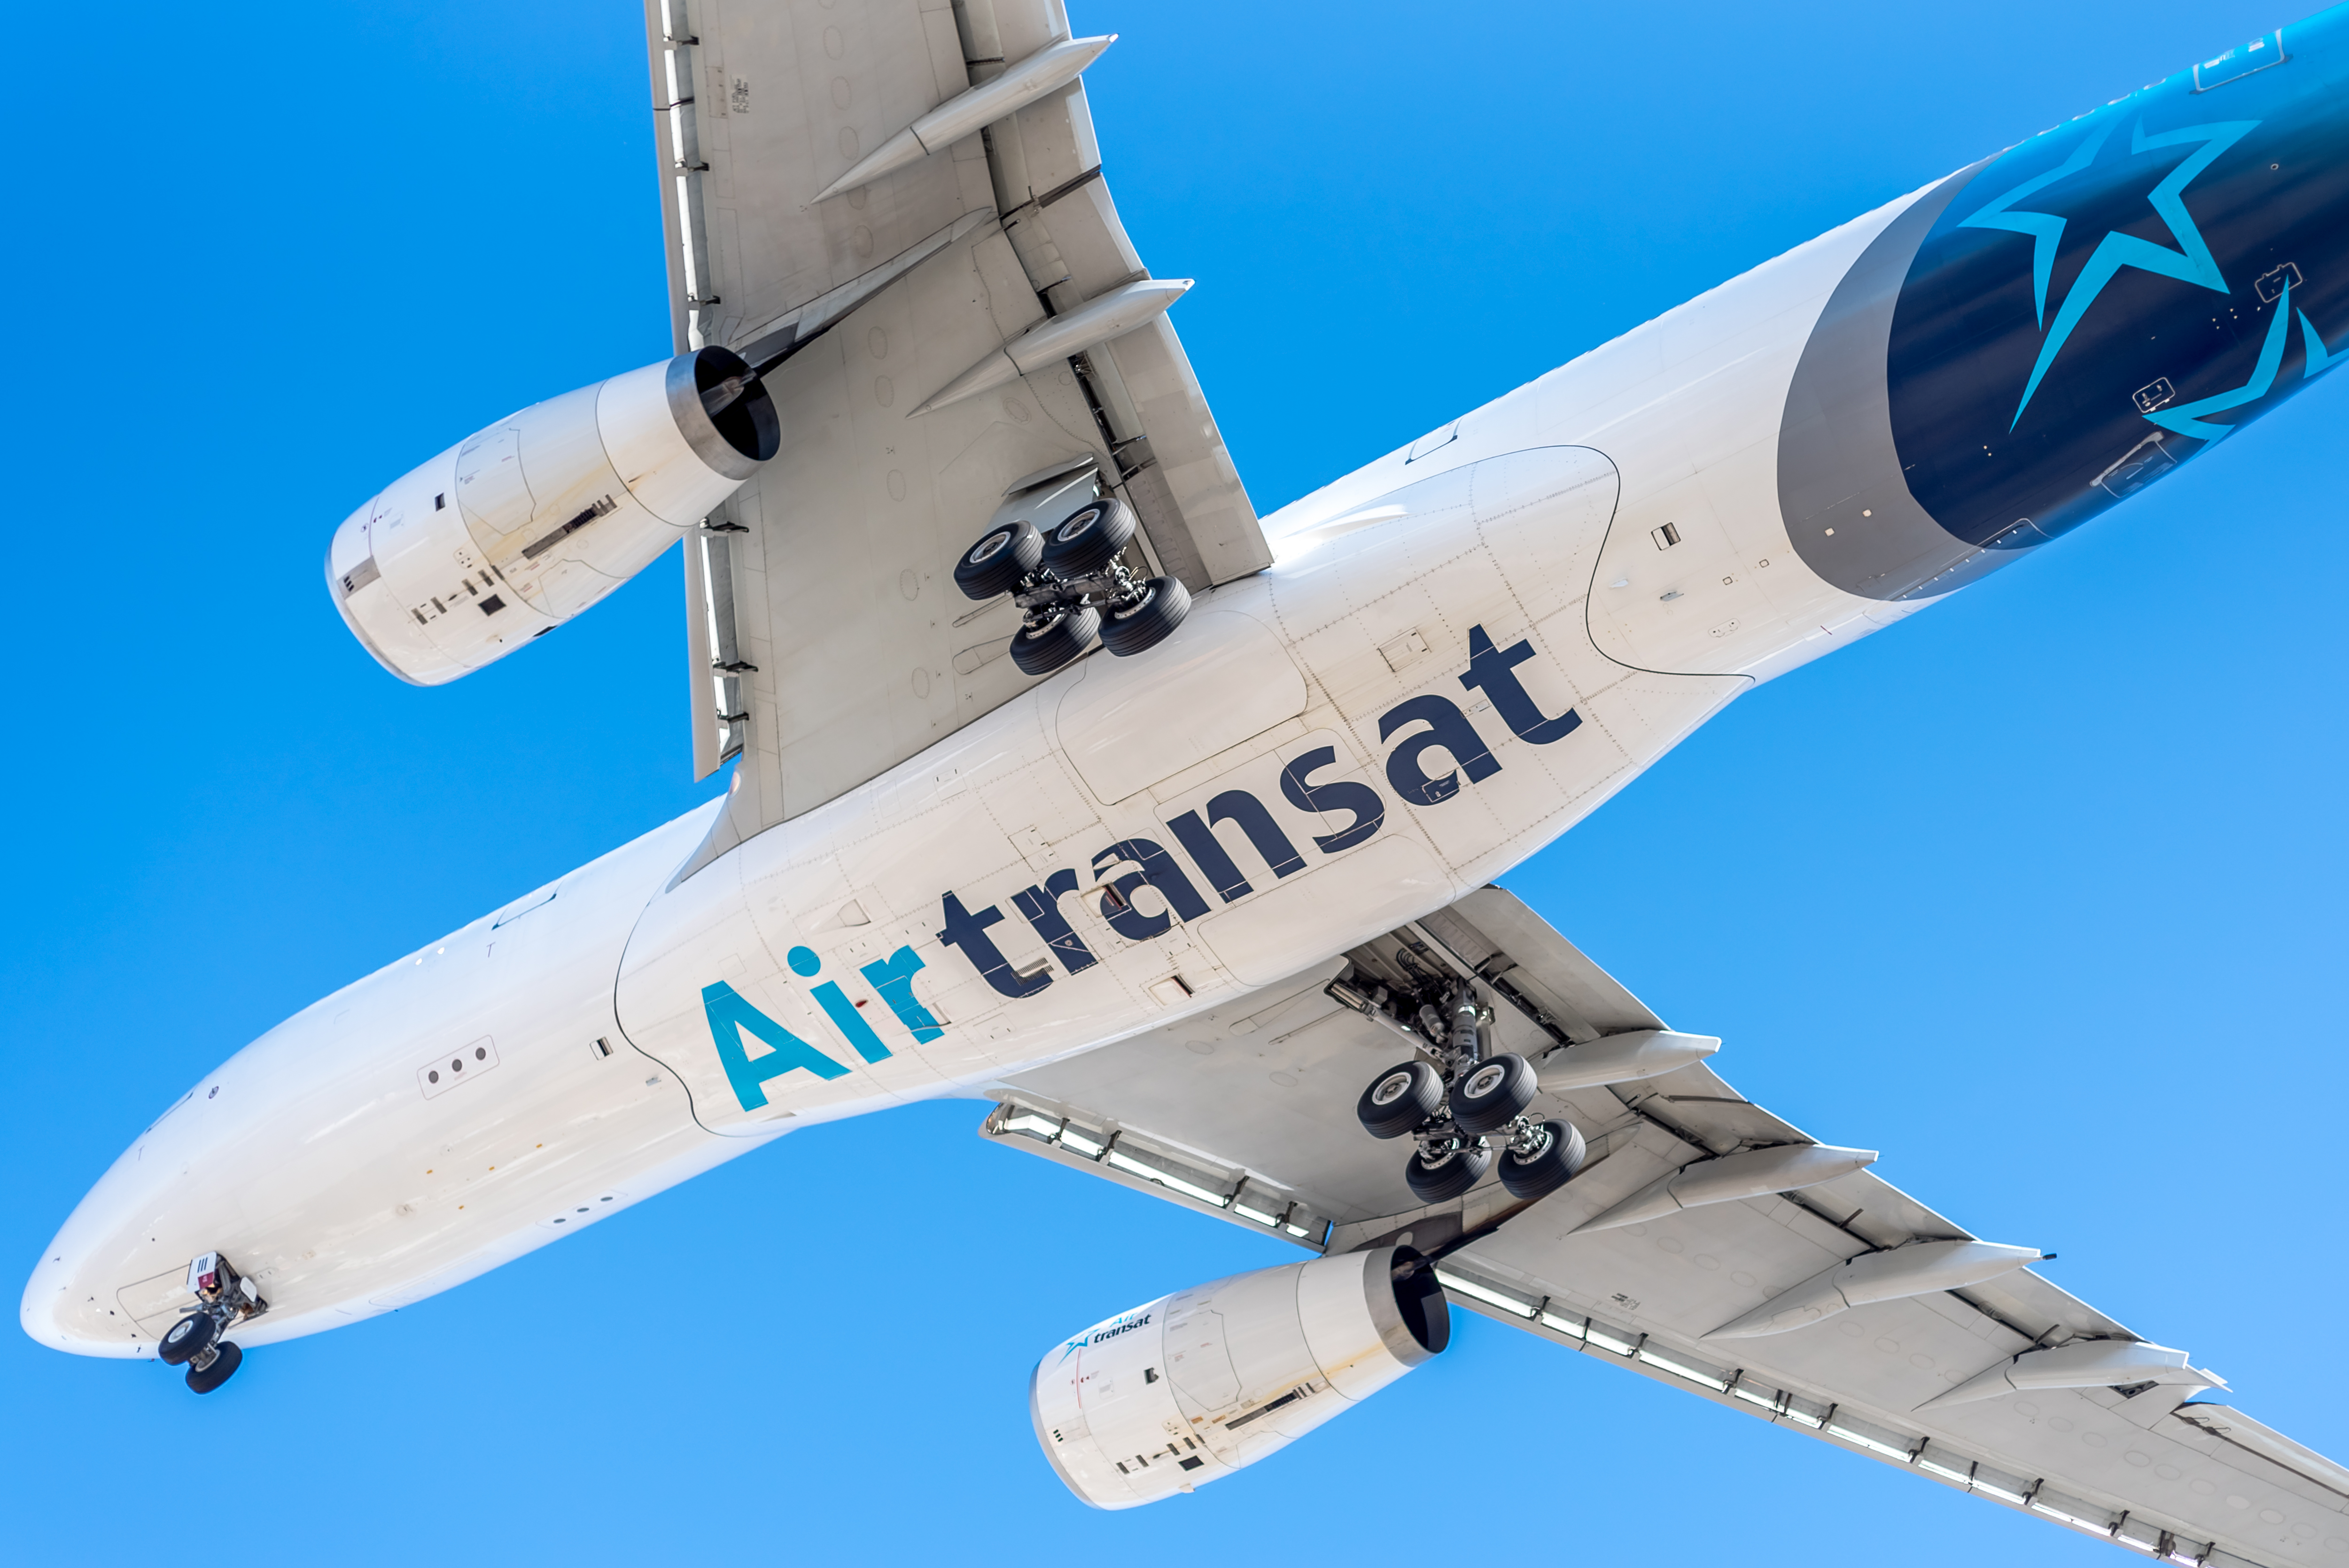 Air Transat Made First Commercial Flights On July 23 Skies Mag